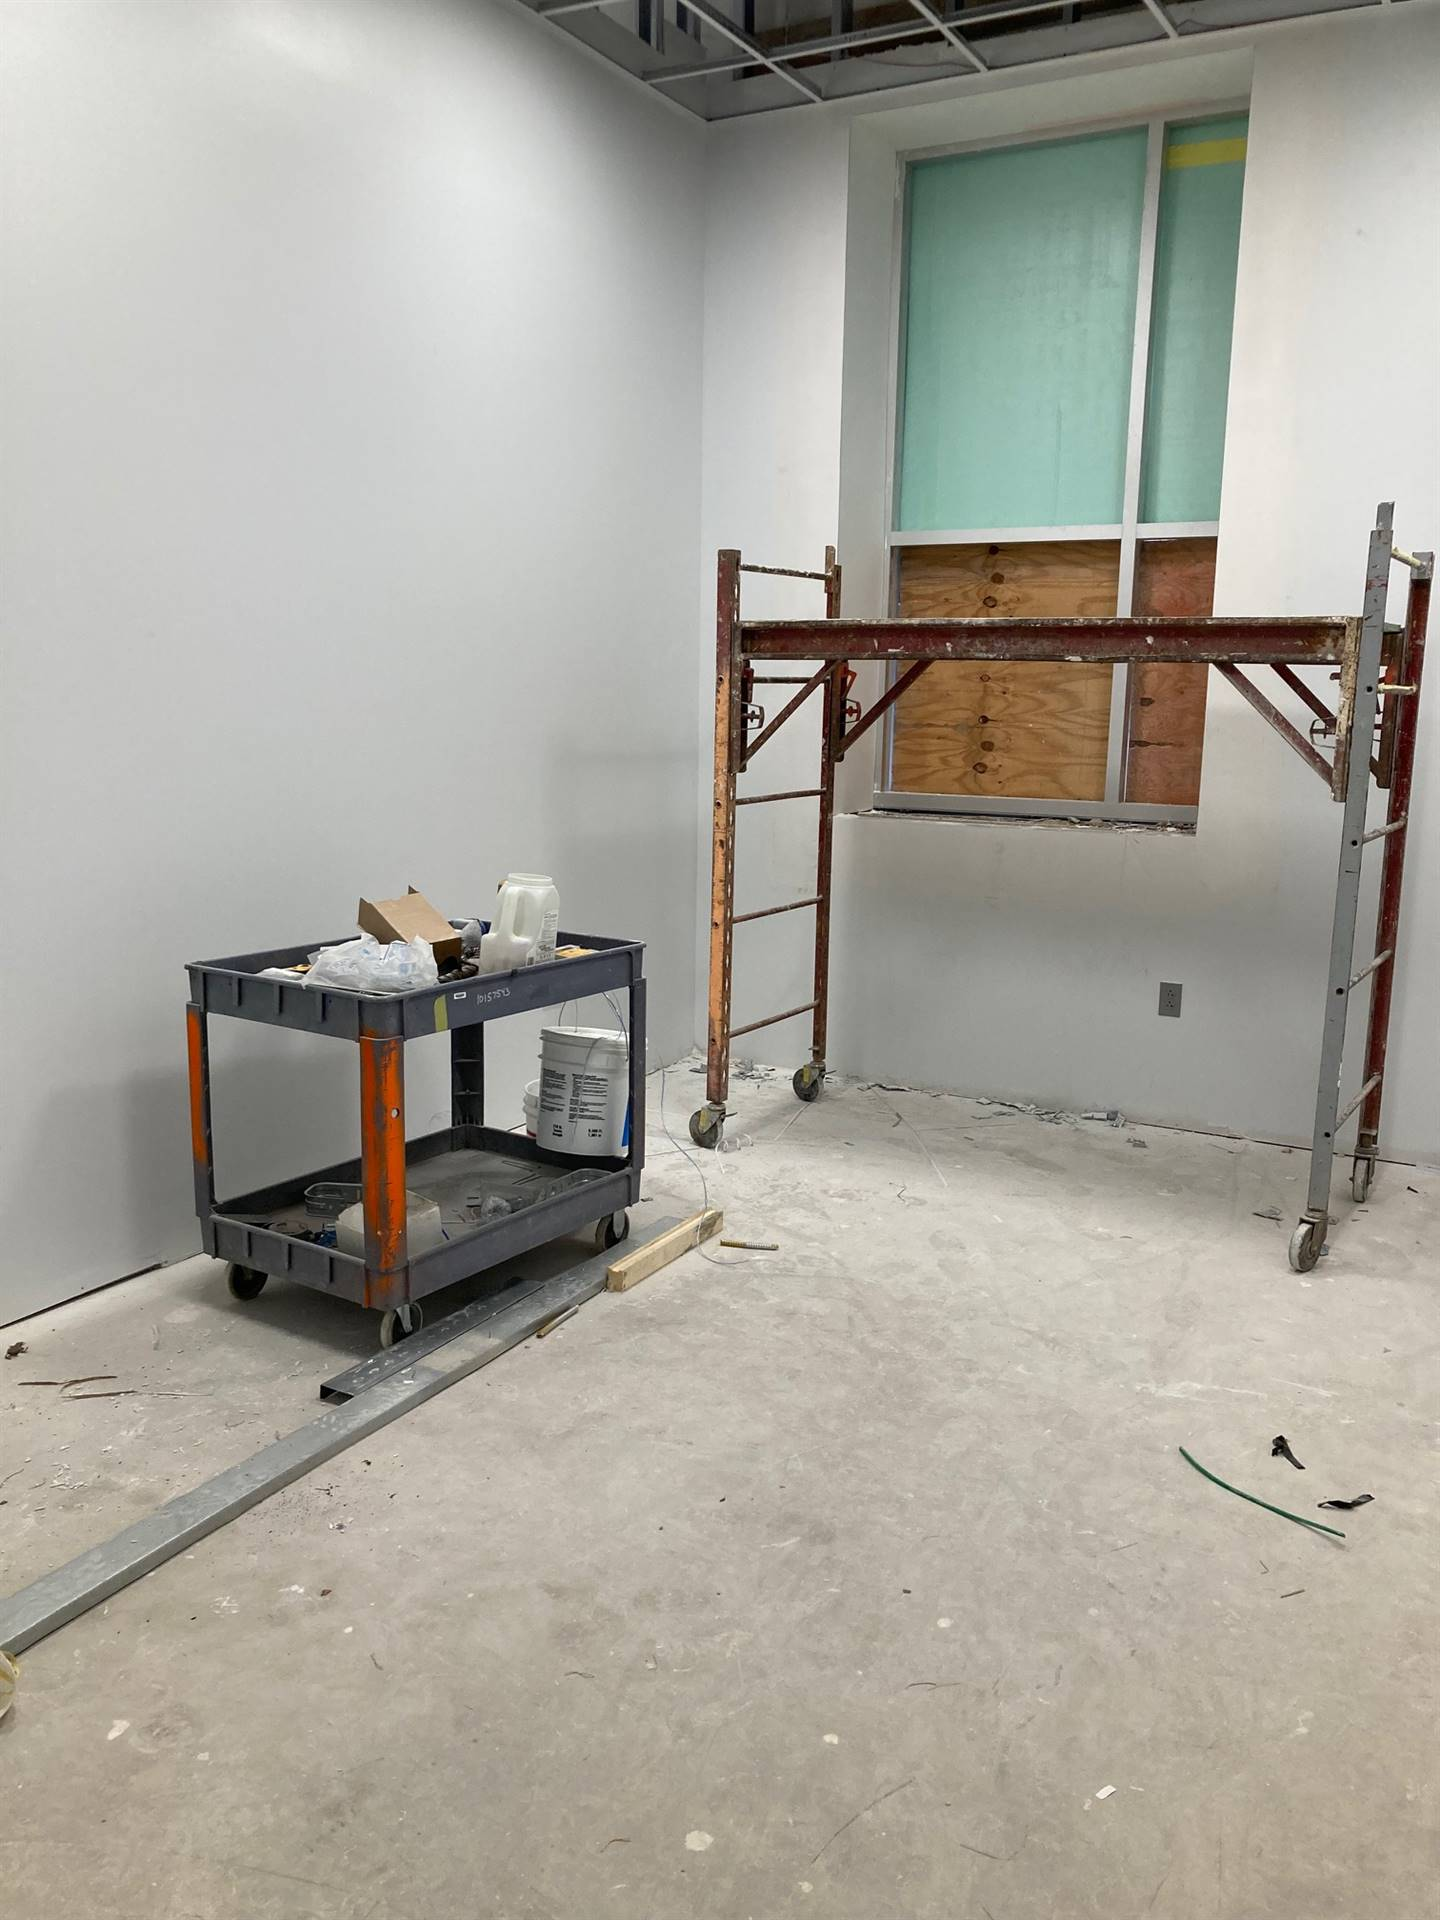 Office space in former pool area